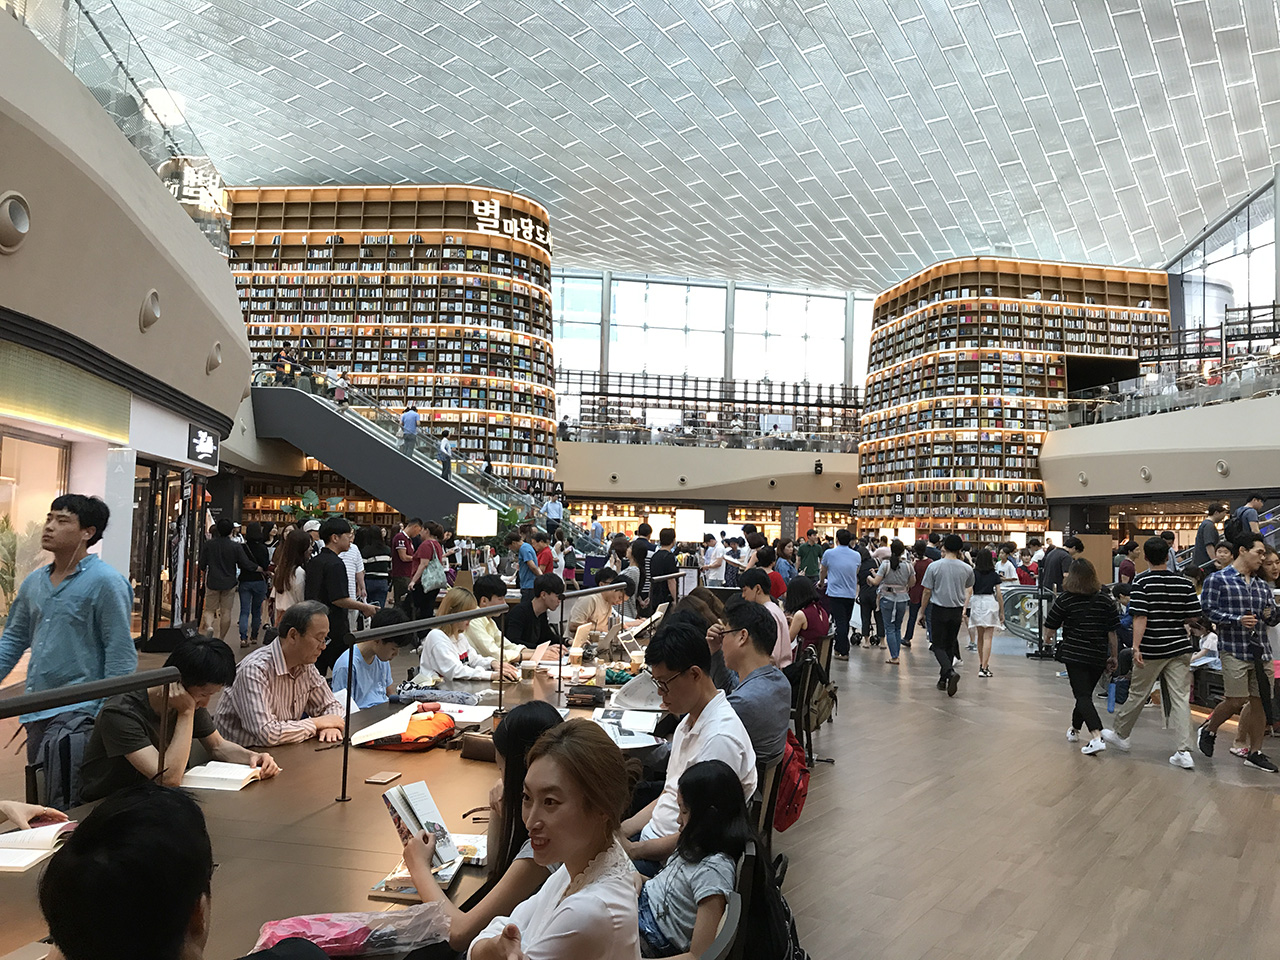 Over 50,000 titles line the walls of this stunning gathering space.